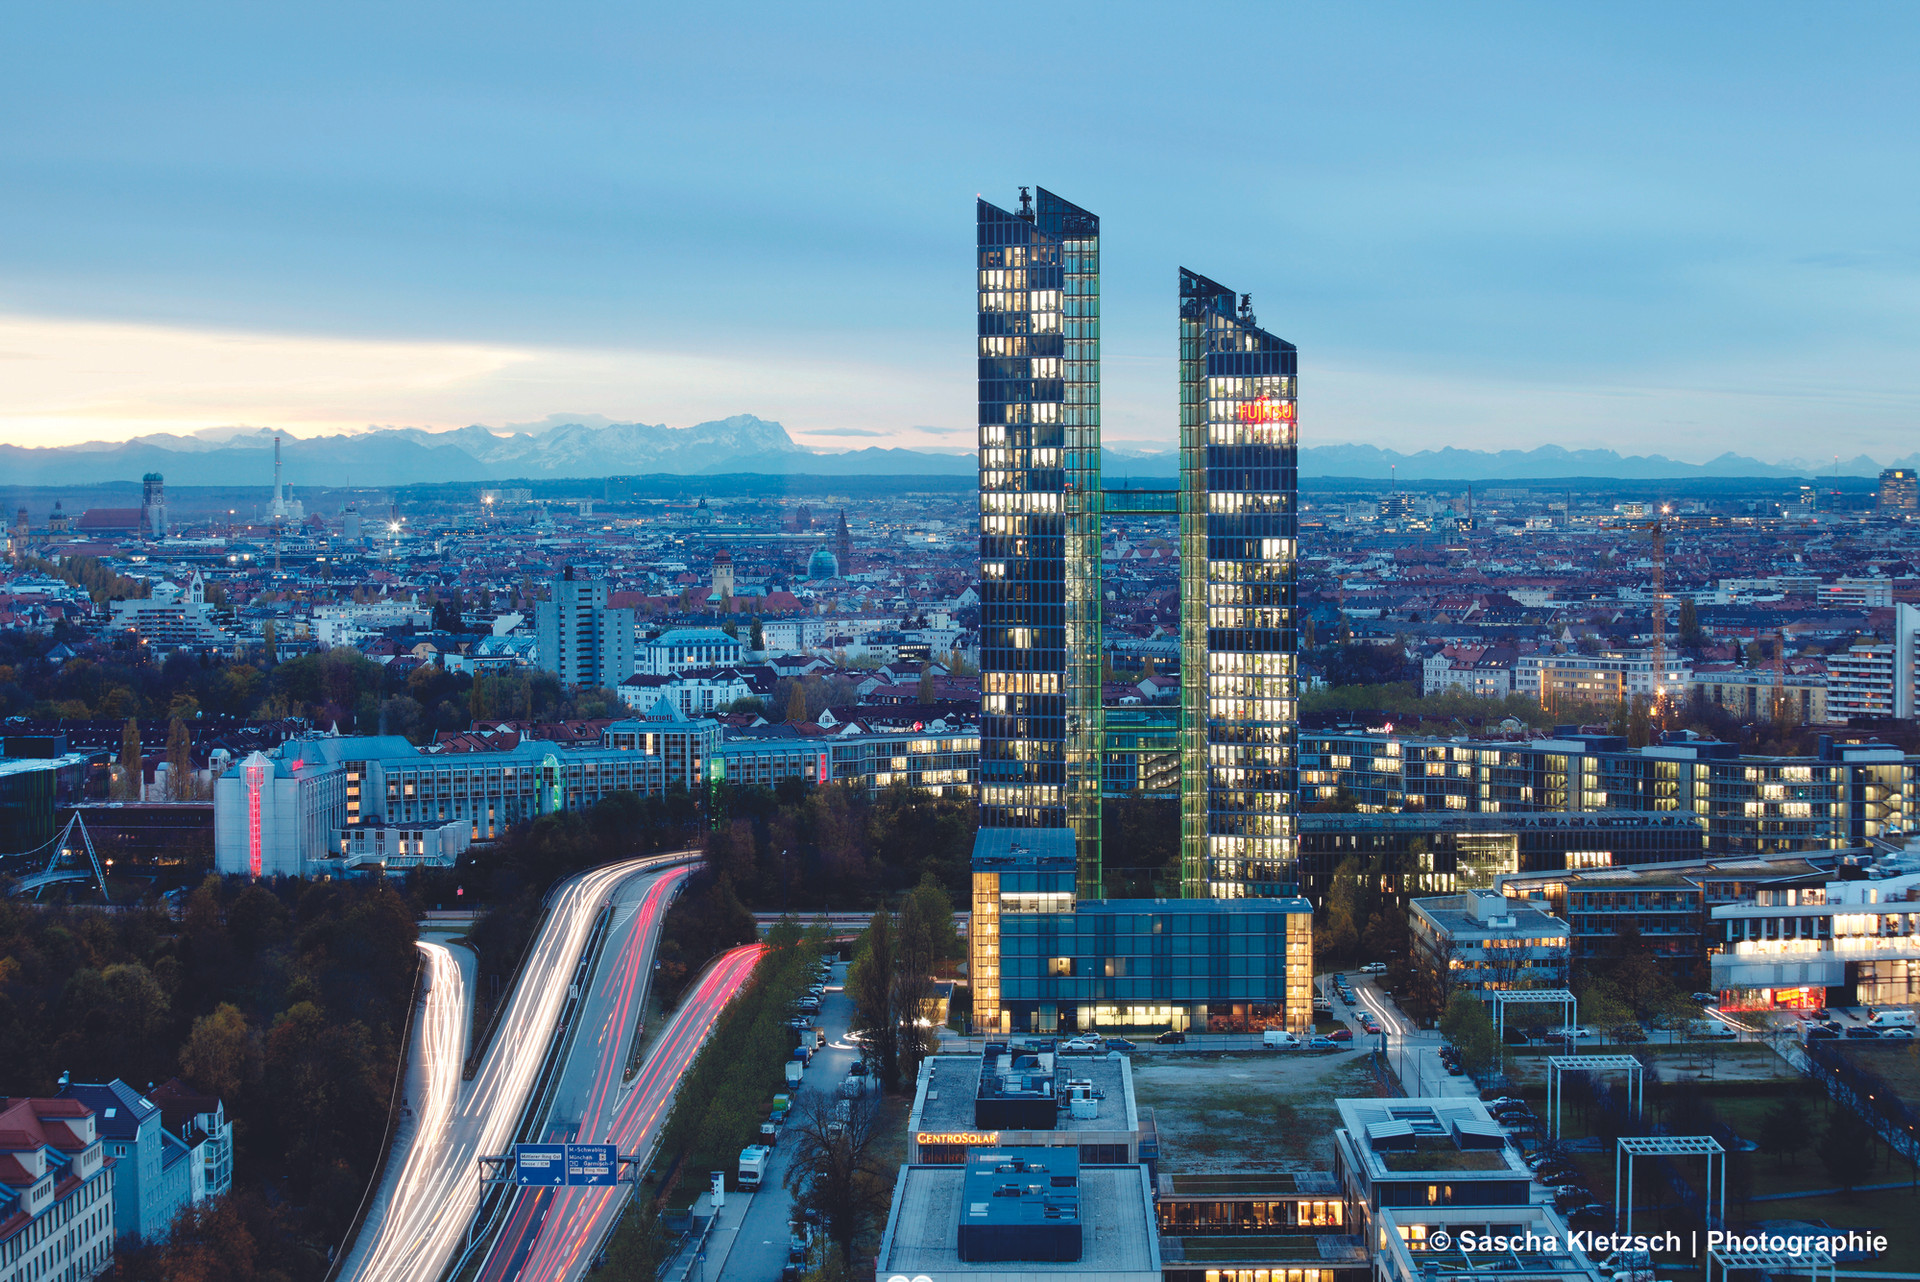 DESIGN OFFICES HIGHLIGHT TOWERS